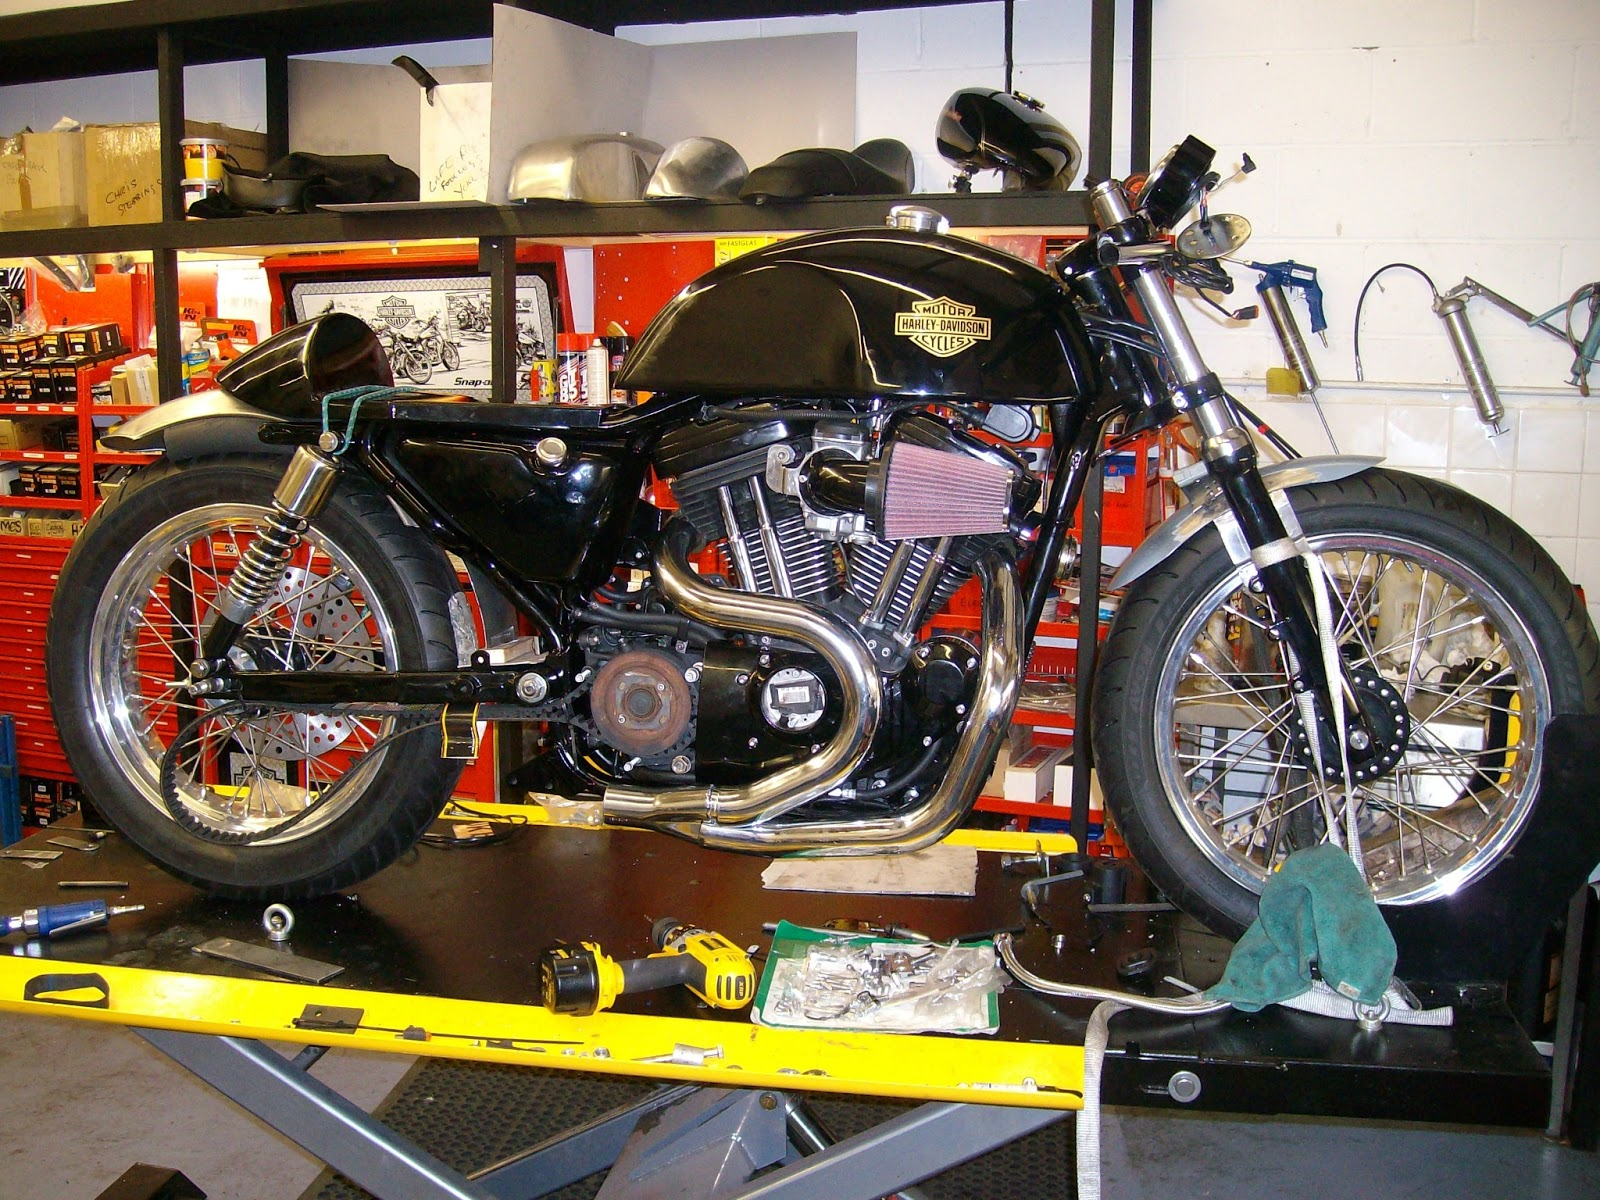 Buell Cafe Racer http://www.way2speed.com/2013/04/buell-cafe-racer-conversion.html